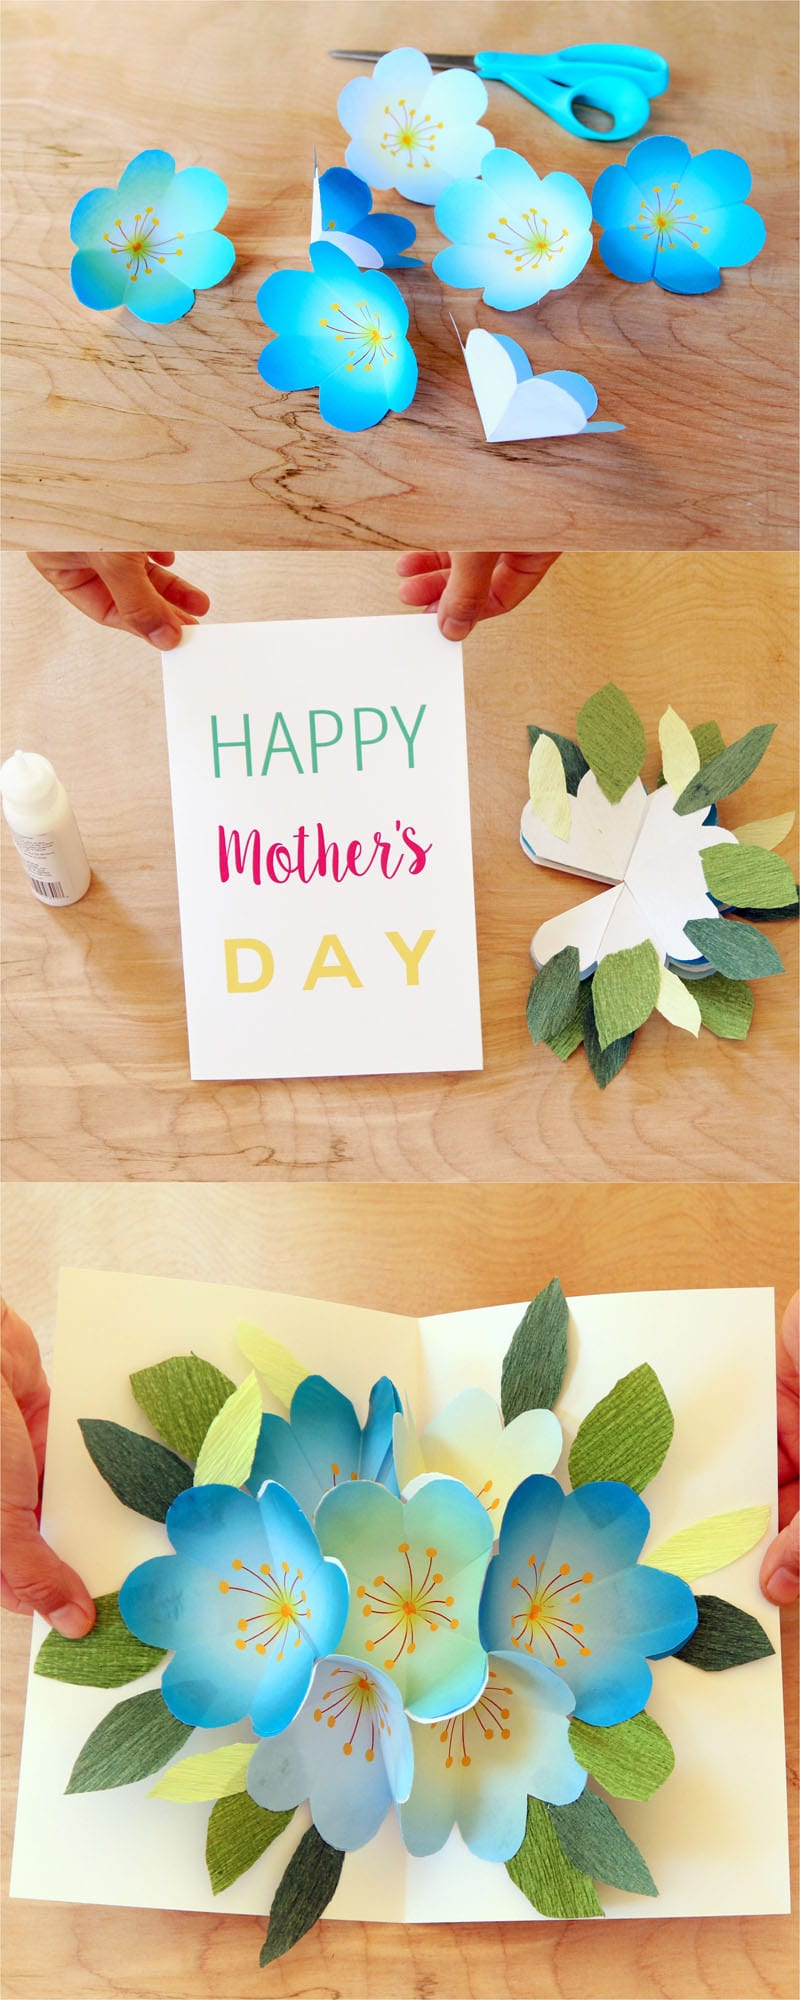 Pop up flowers diy printable mothers day card a piece of rainbow how to make pop up birthday card tutorial kristyandbryce Choice Image